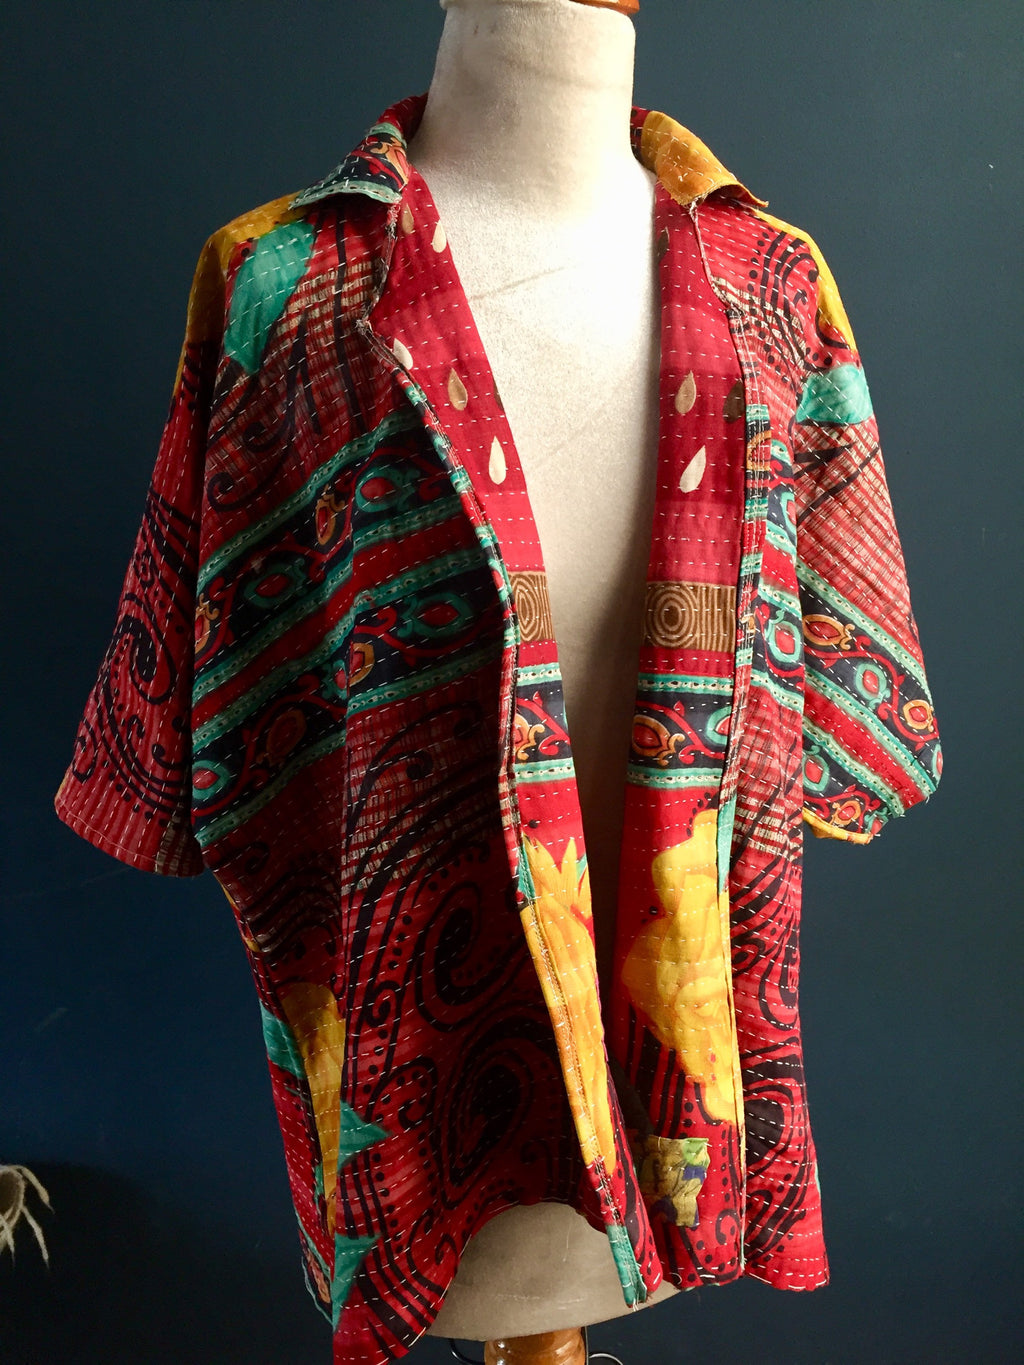 Women's Jacket | made from Old Vintage Kantha Quilt